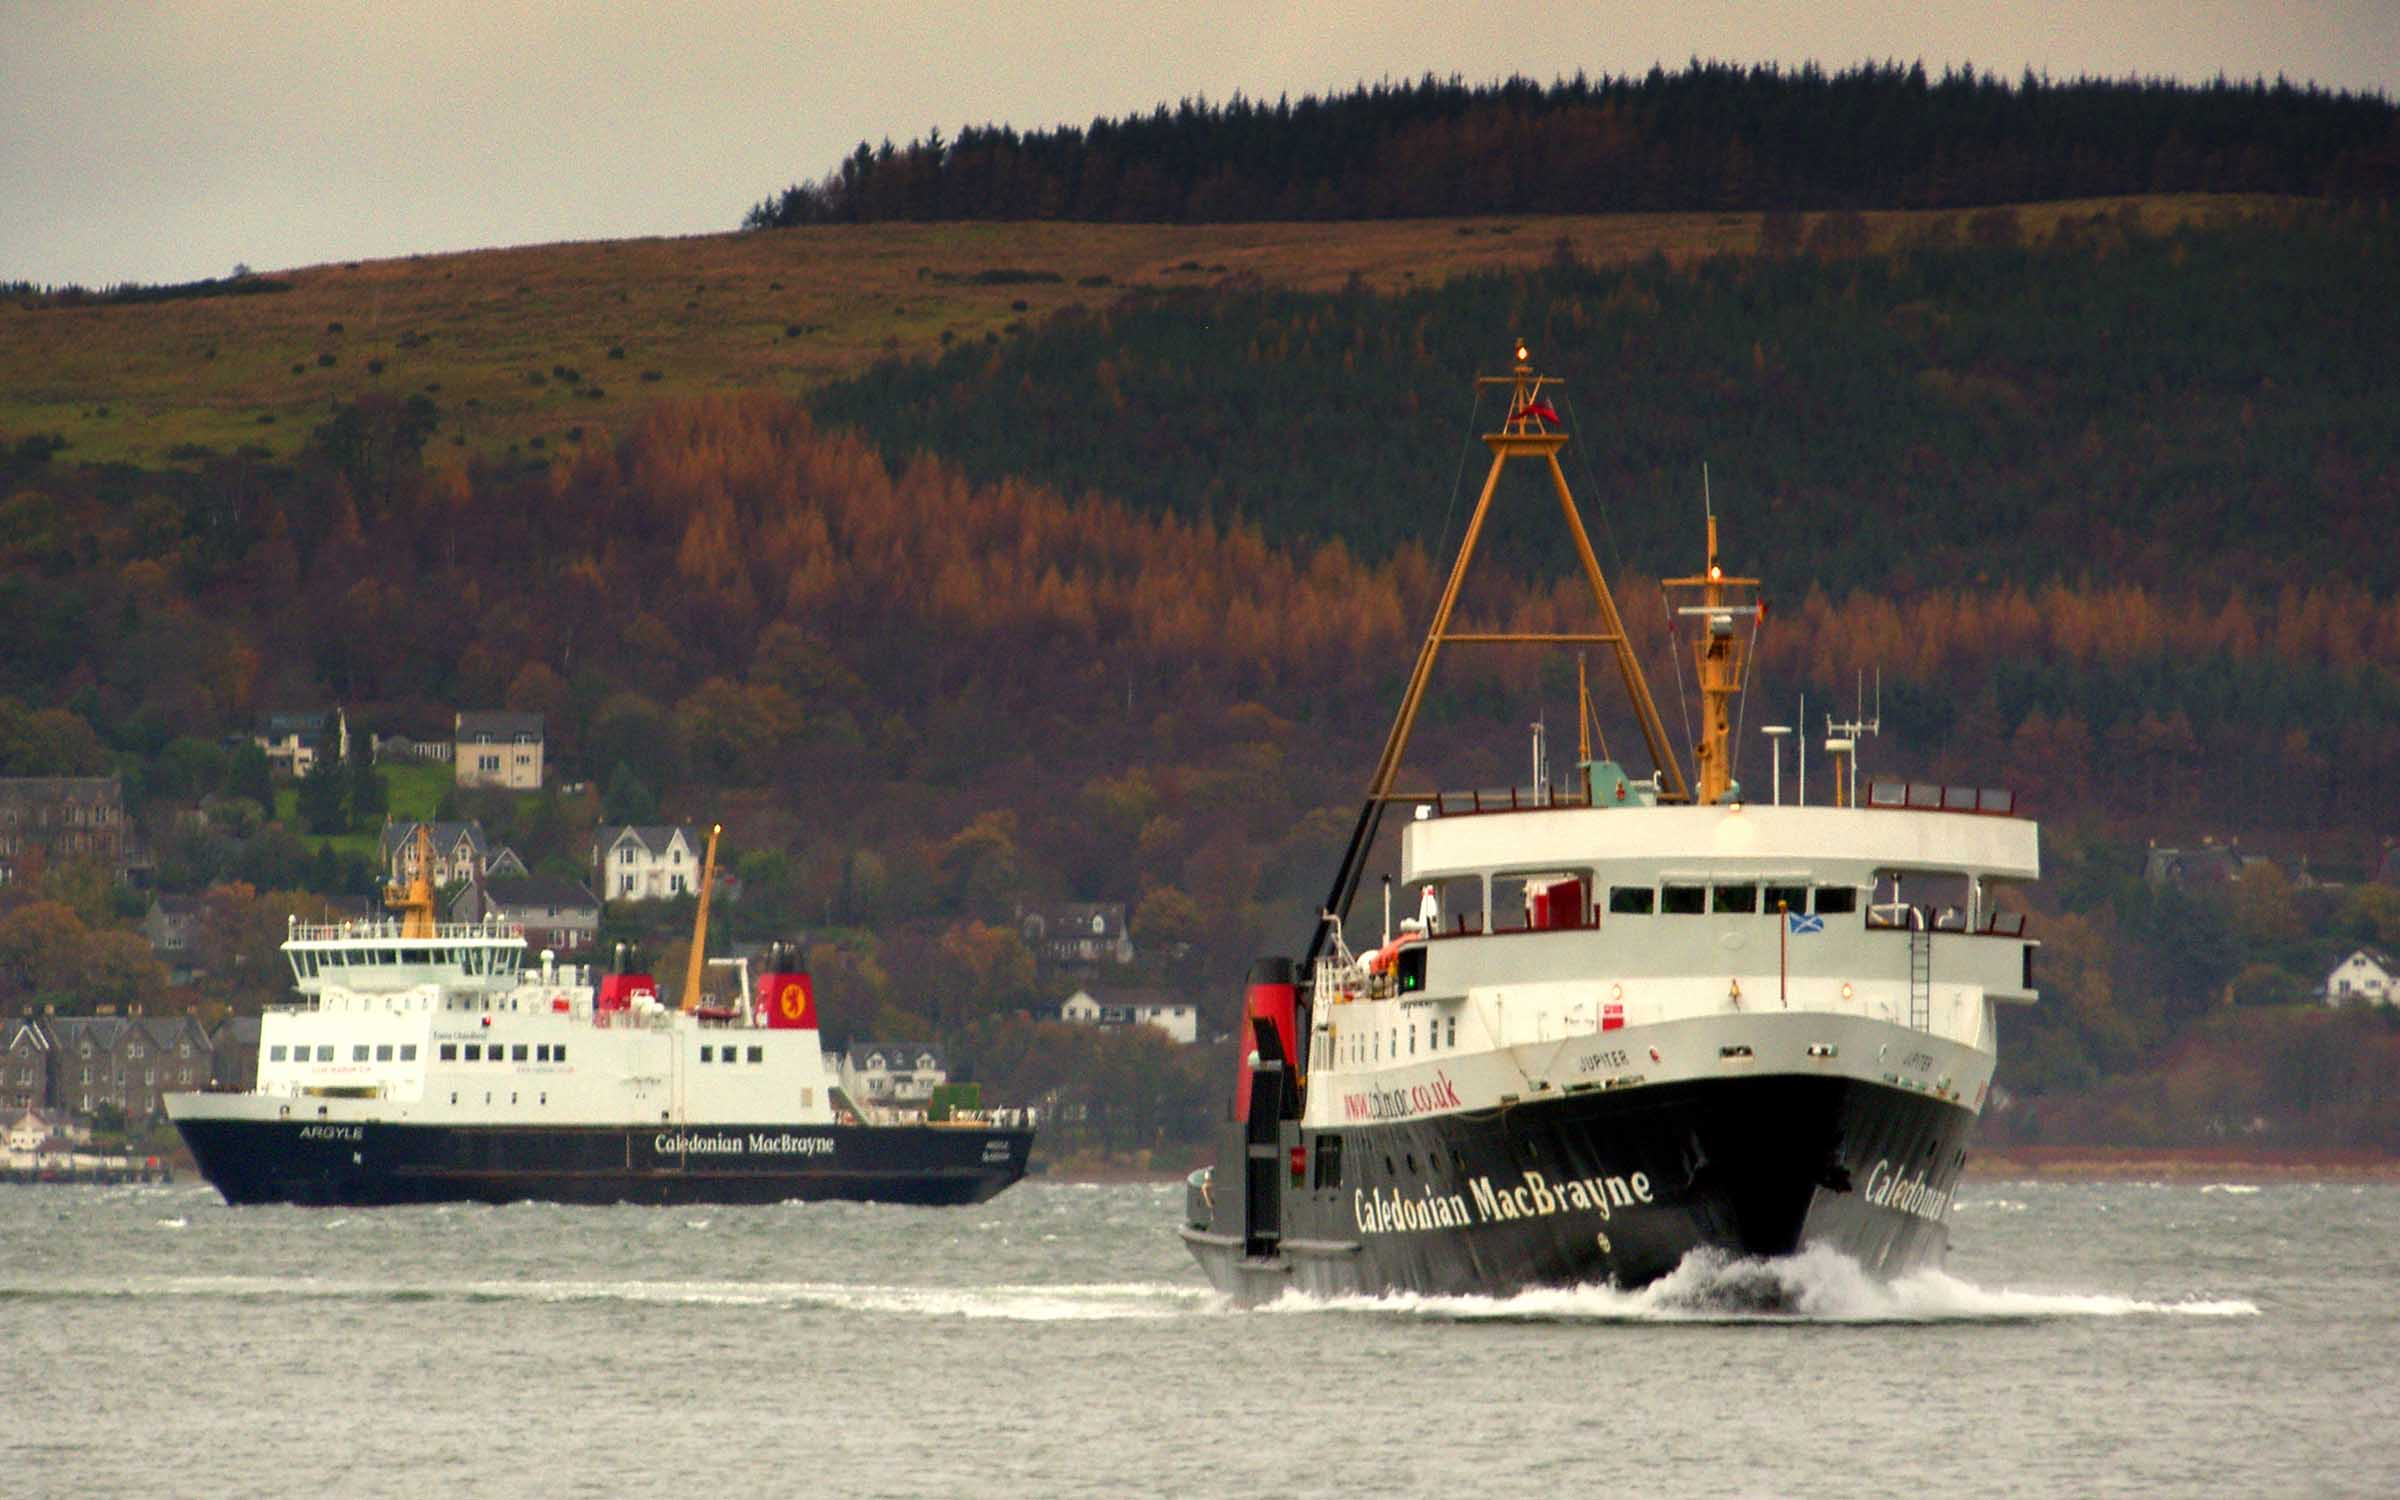 Jupiter and Argyle on the Upper Clyde (Ships of CalMac)